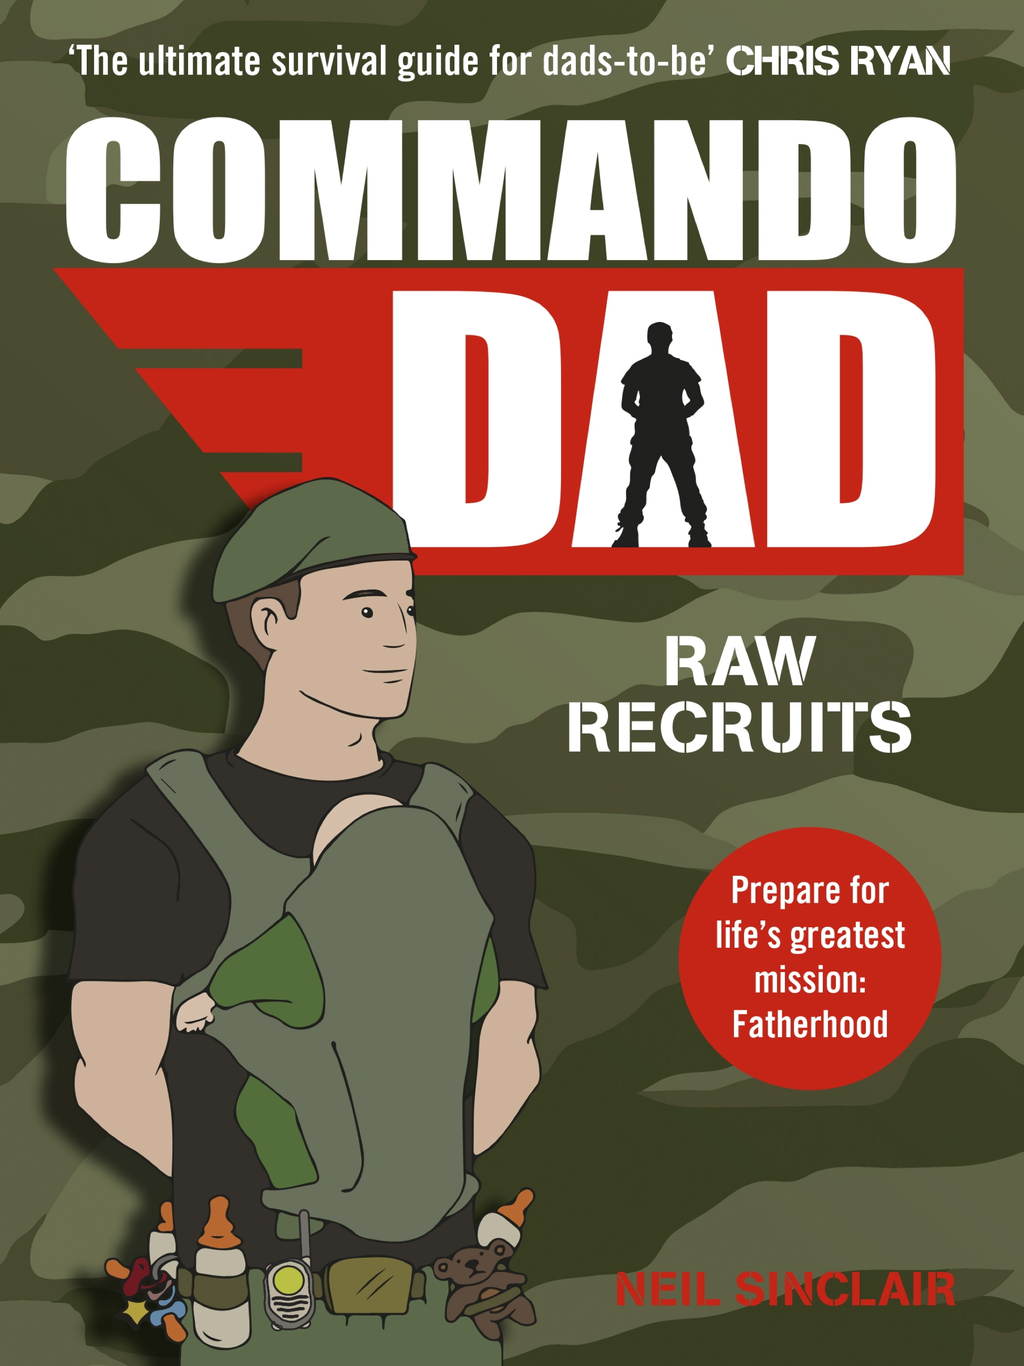 Commando Dad Raw Recruits: From pregnancy to birth